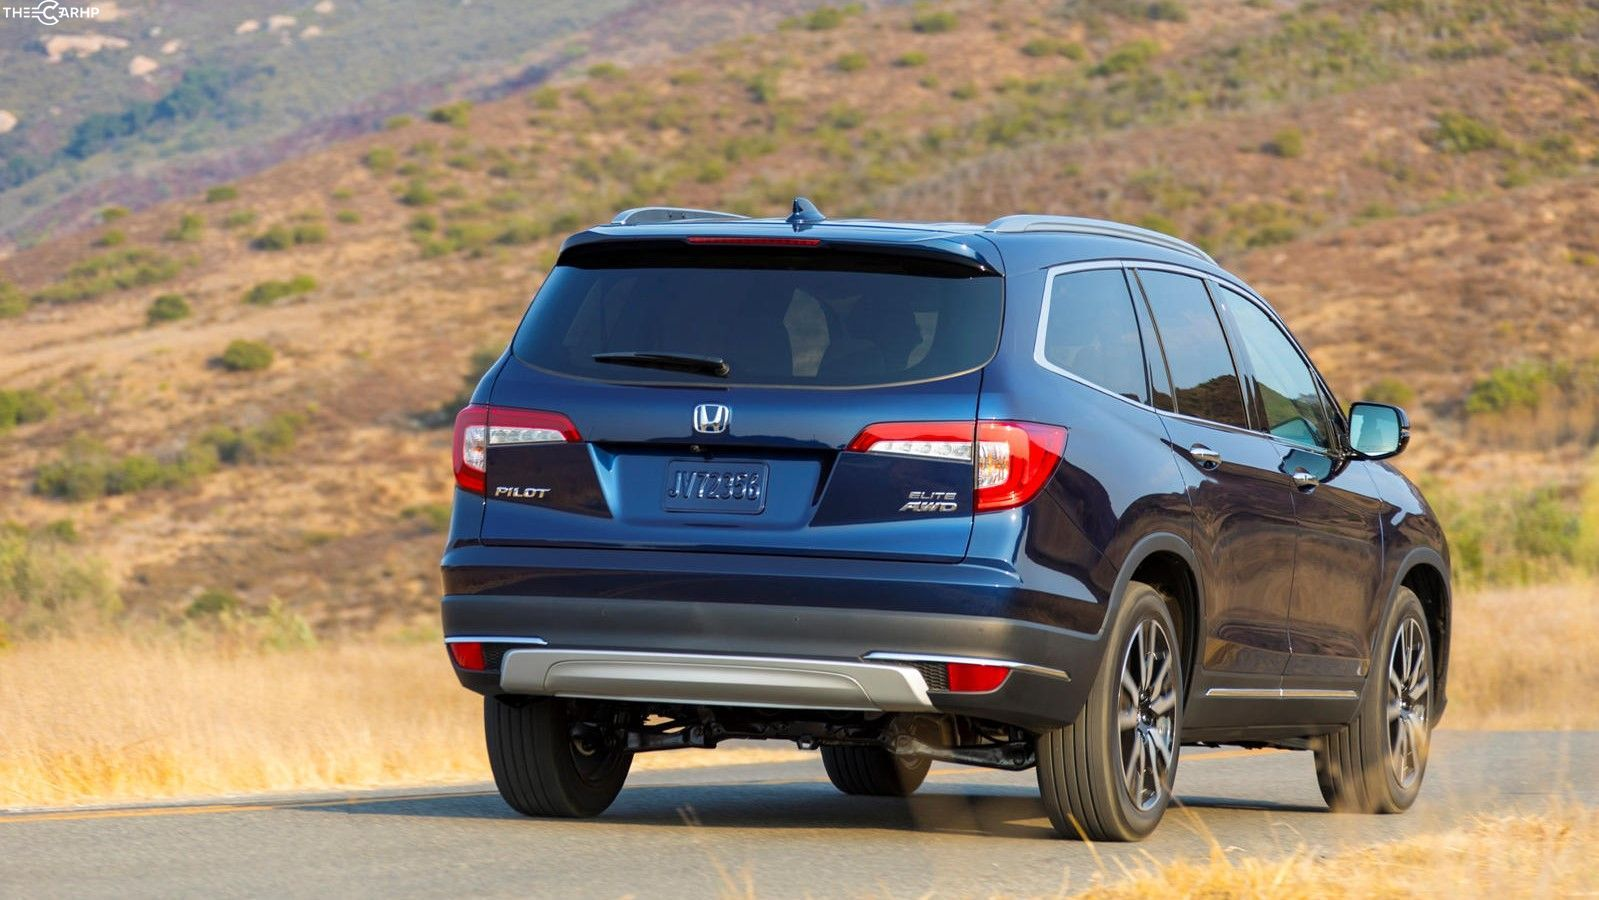 2021 Honda Pilot Rear View